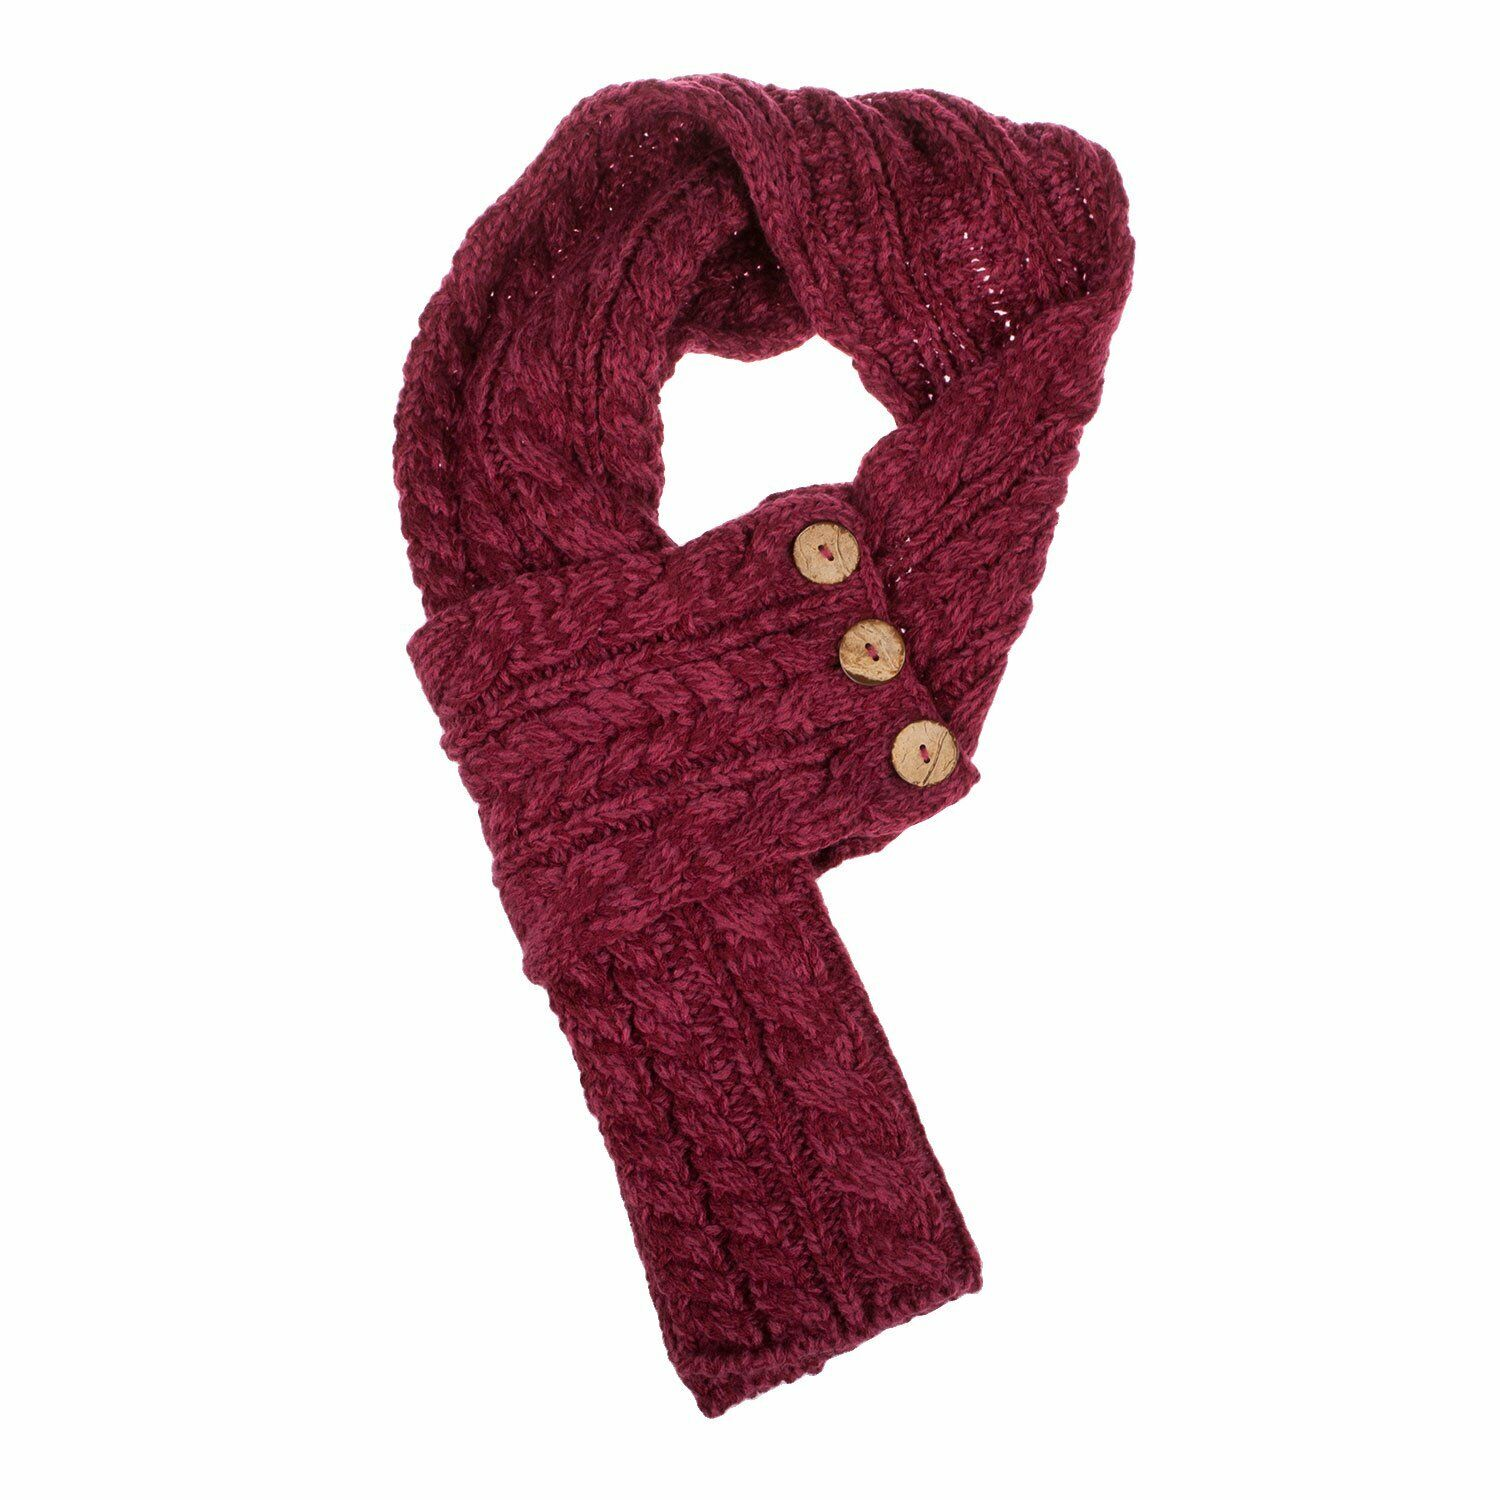 Aran Traditions Raspberry Acrylic Cable Knit Small Wrap Scarf